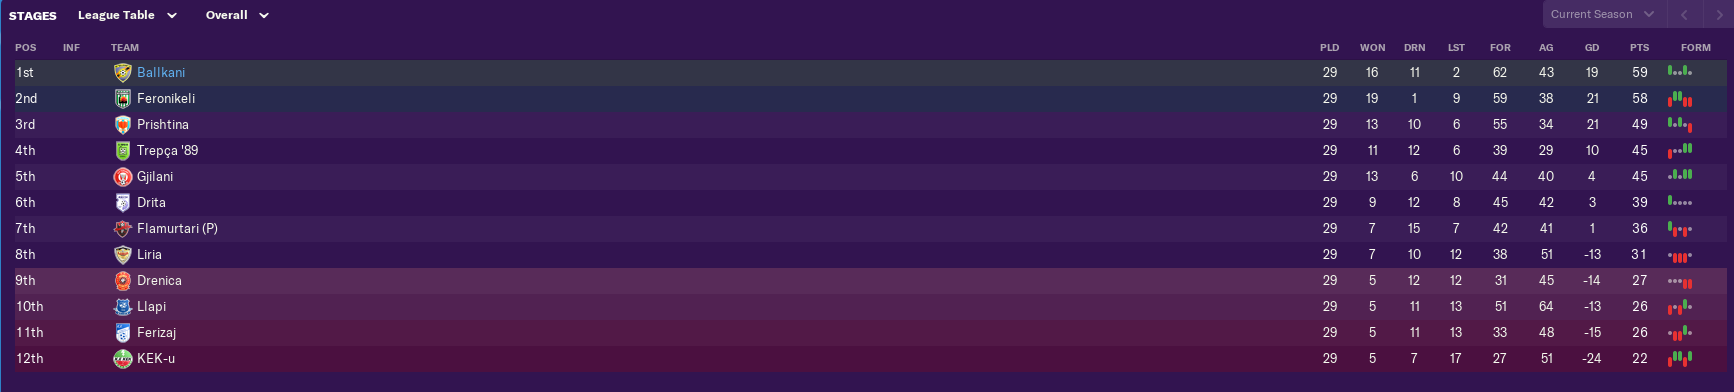 april-league-table.png